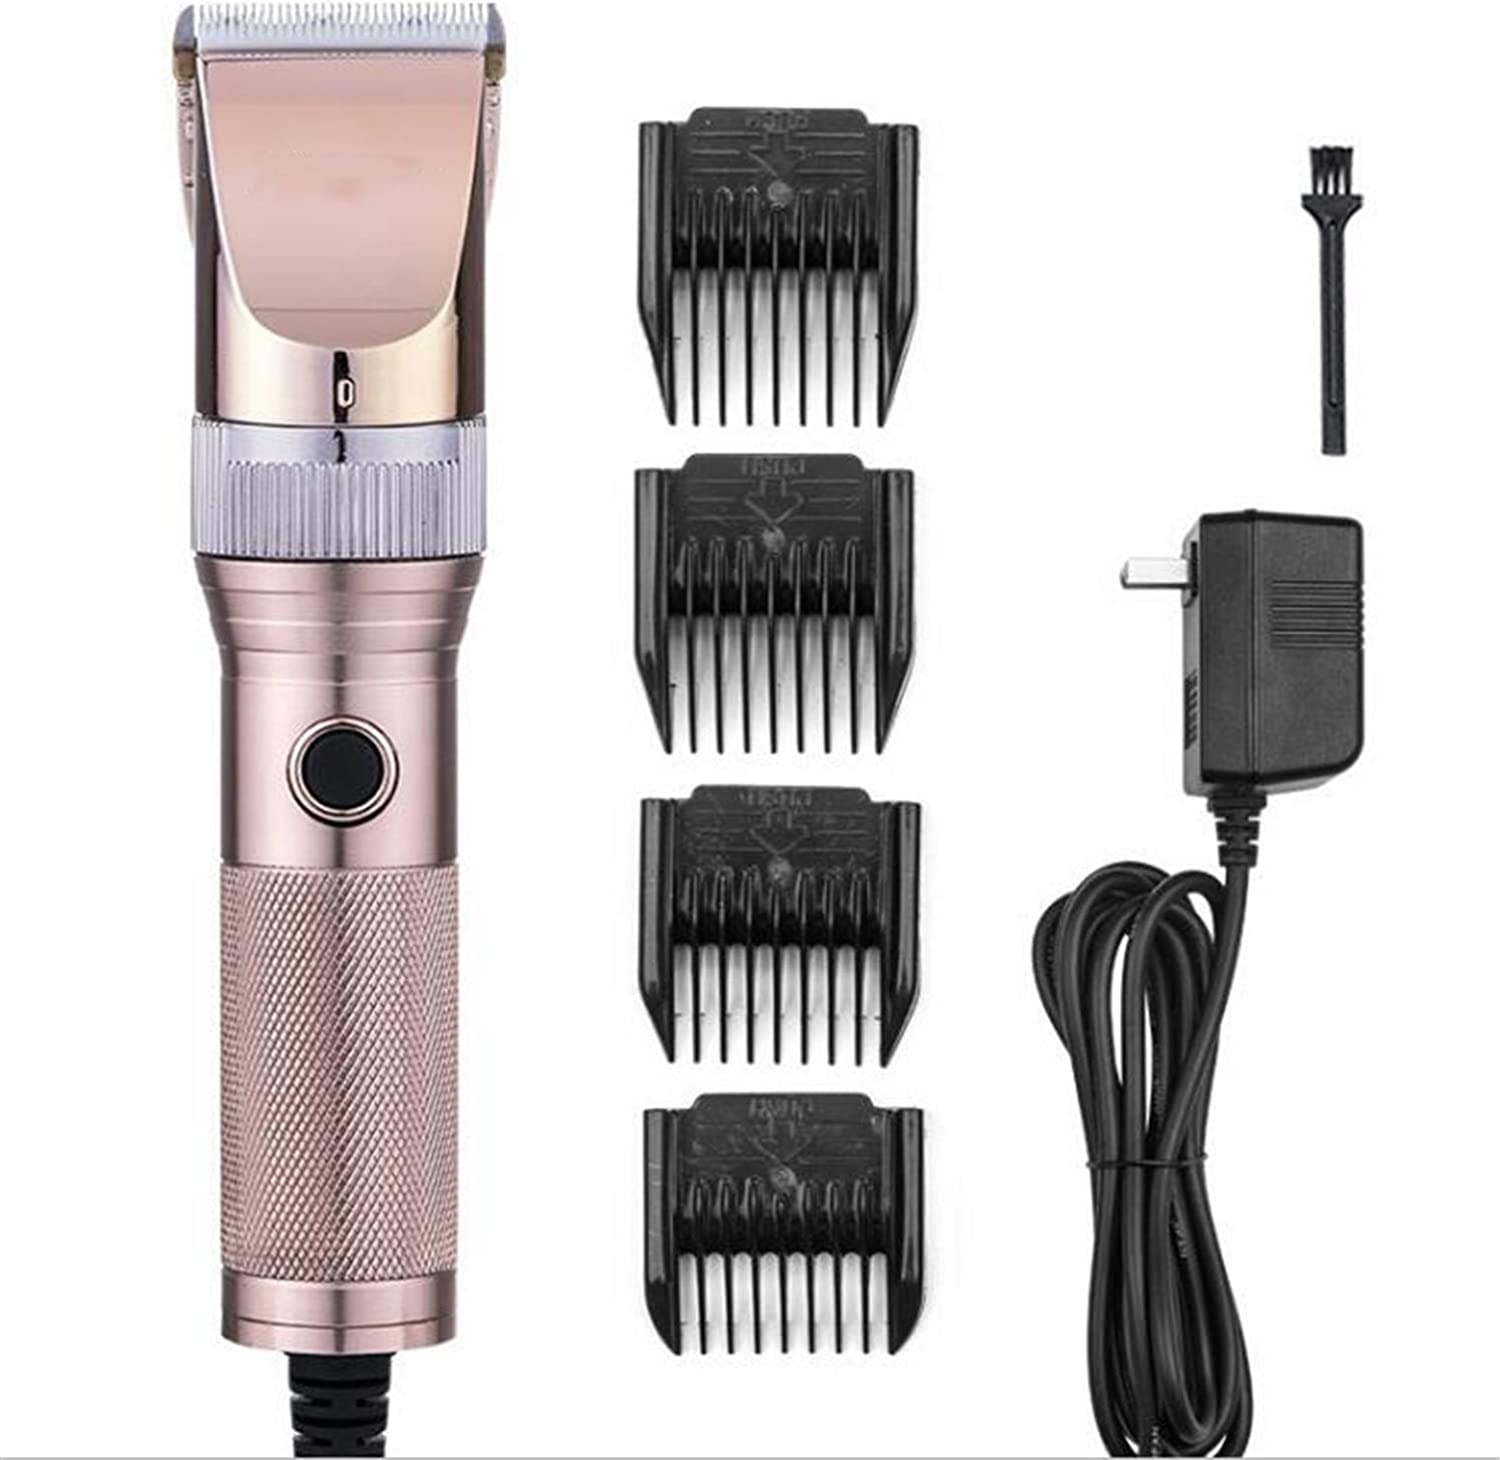 Dog Clippers, High Power Aluminum Alloy Body 12V High Strength Motor Shave Faster 35tooth Special Cutter Head,Finetuning Of The Five Gears